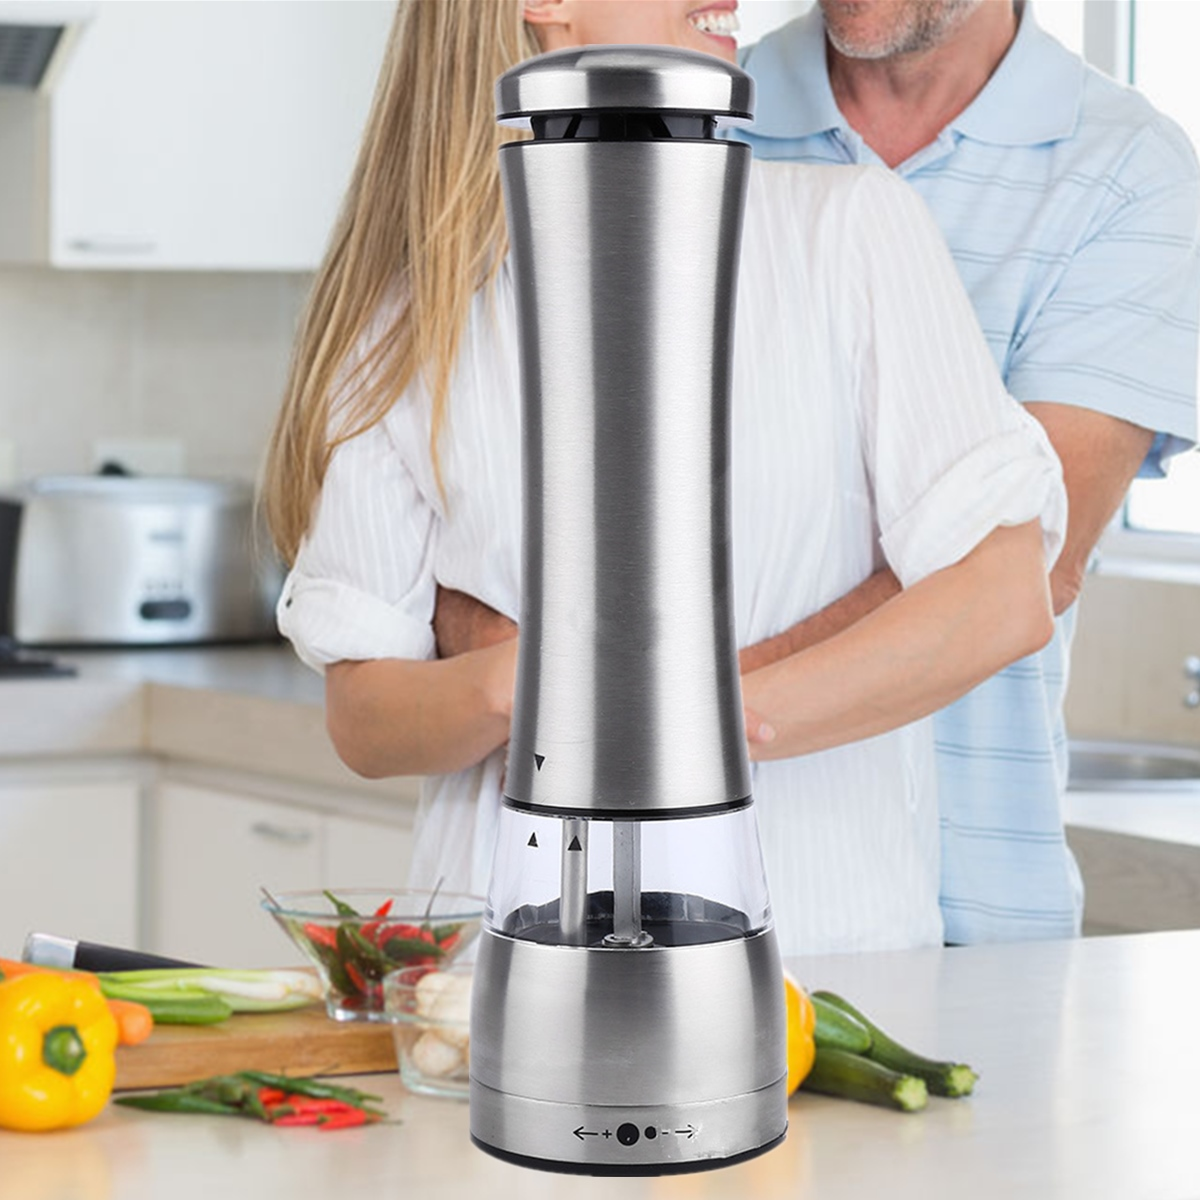 Automatic Electric Pepper Mill Shakers Stainless Steel Adjustable Salt Pepper Grinder